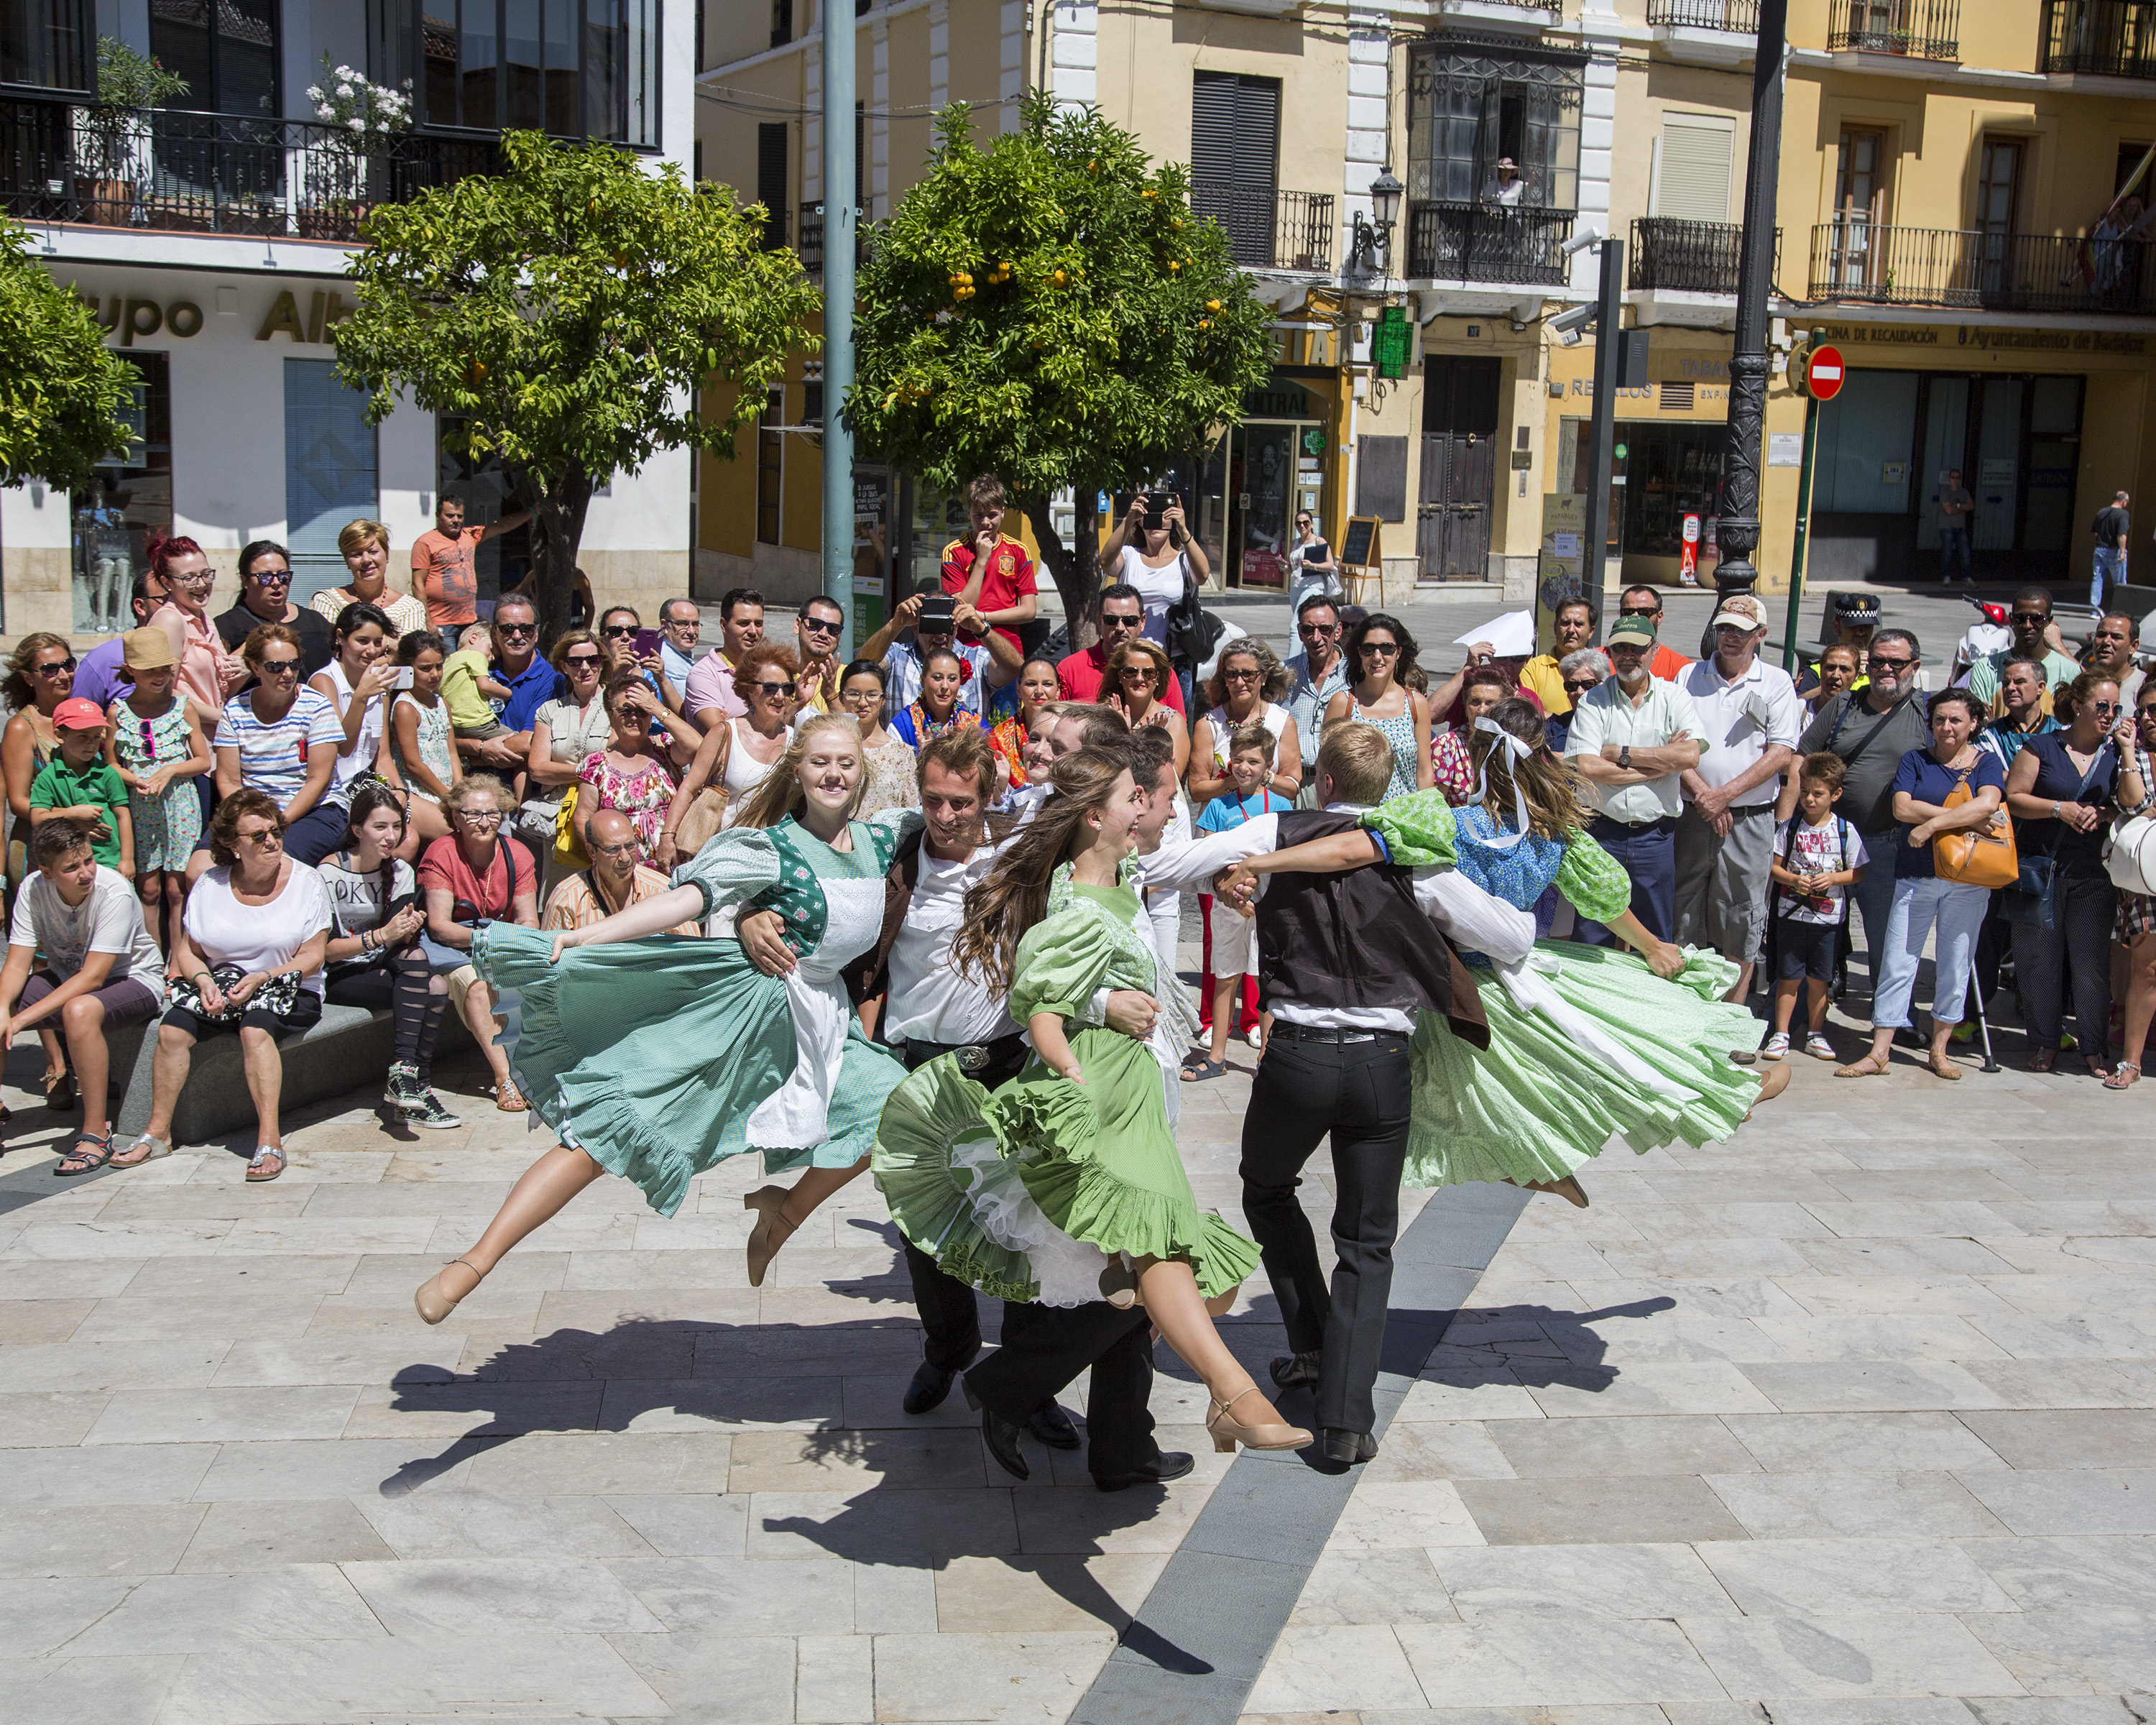 "Folk Dancers Victoria Ringer, Zach Diamond, Thomas Clements, Jessa Richards, Katie Haddock, Taylor Haycock, Abram Allred, and Lauren Piperato performing the USA ""Mary Bee Square"" at the International Folkloric Festival 'Ciudad de Burgos' in 2015. 